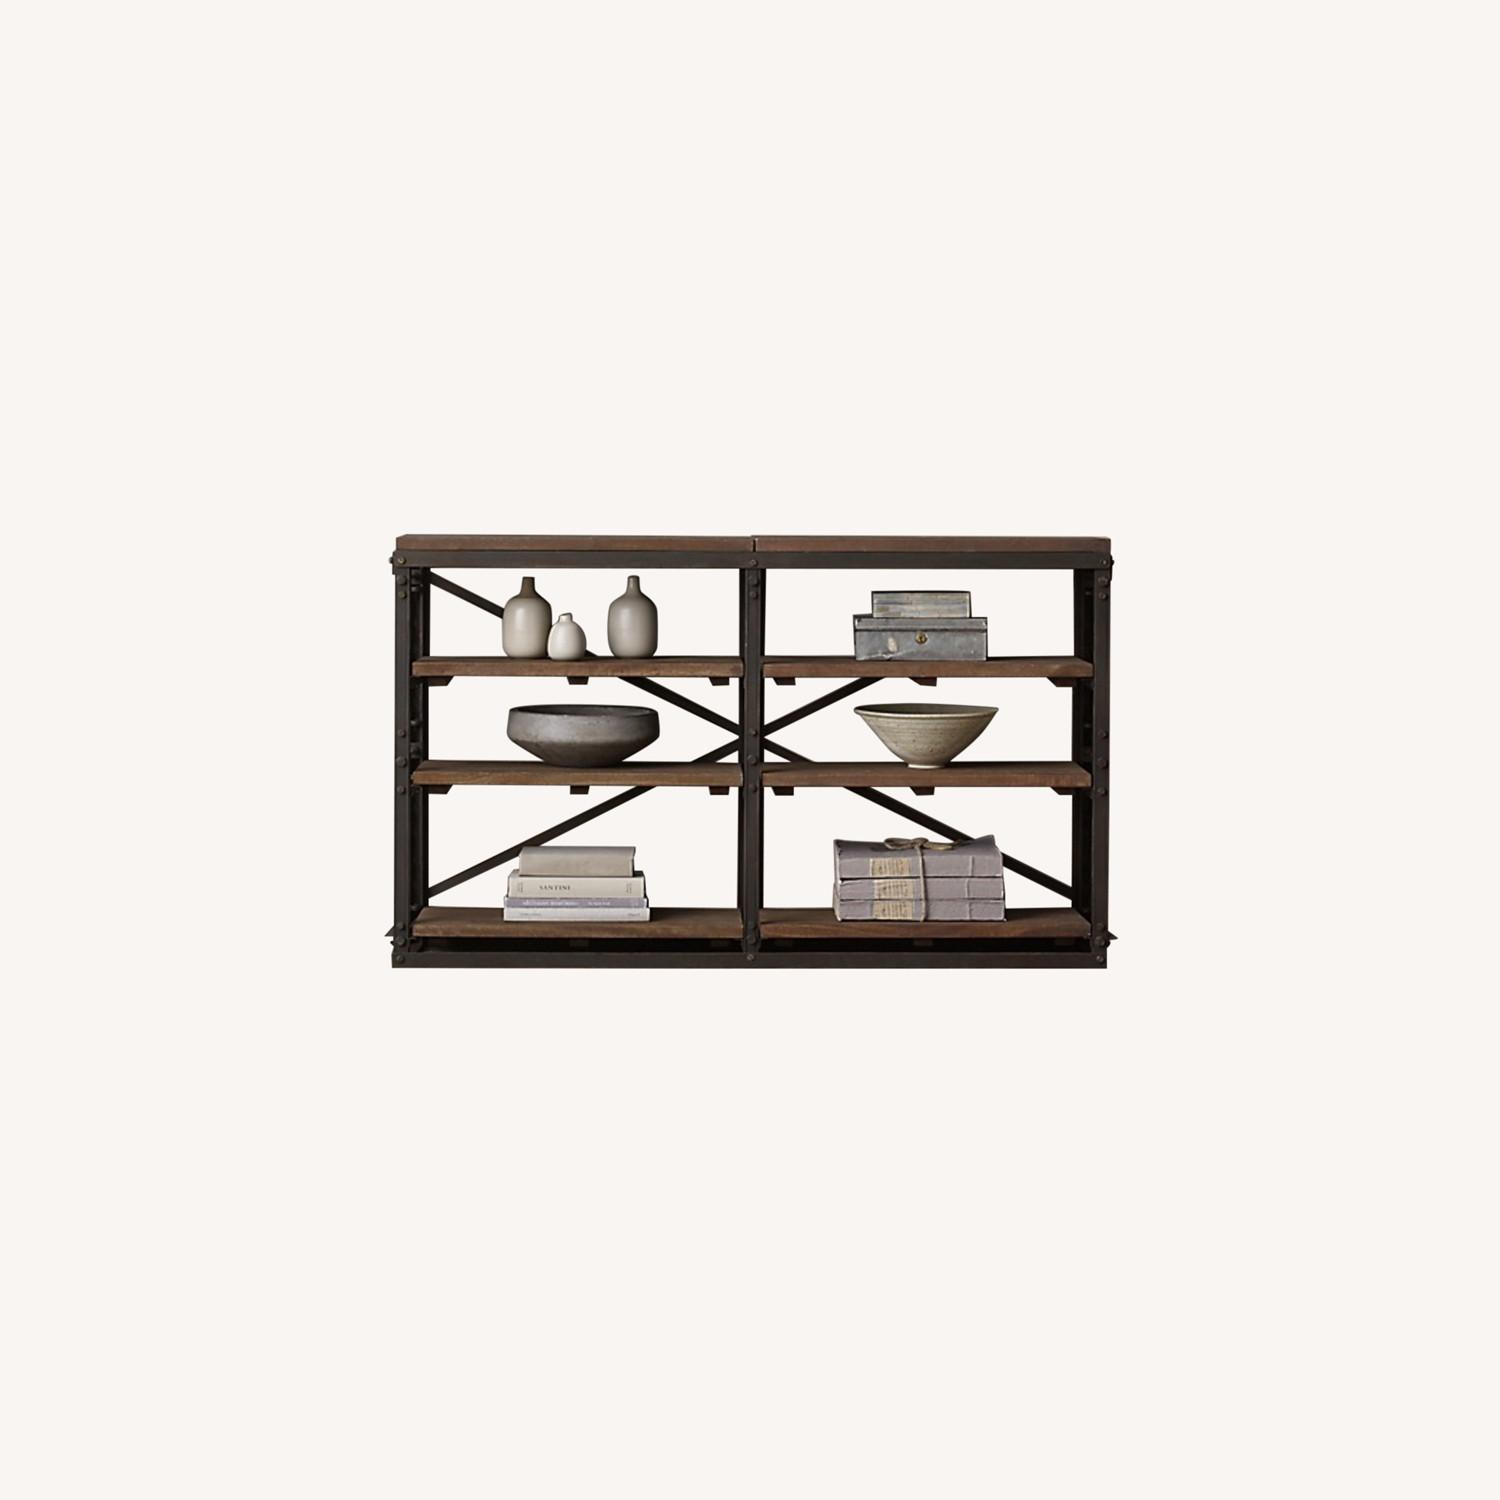 Restoration Hardware French Library Console Tables - image-0